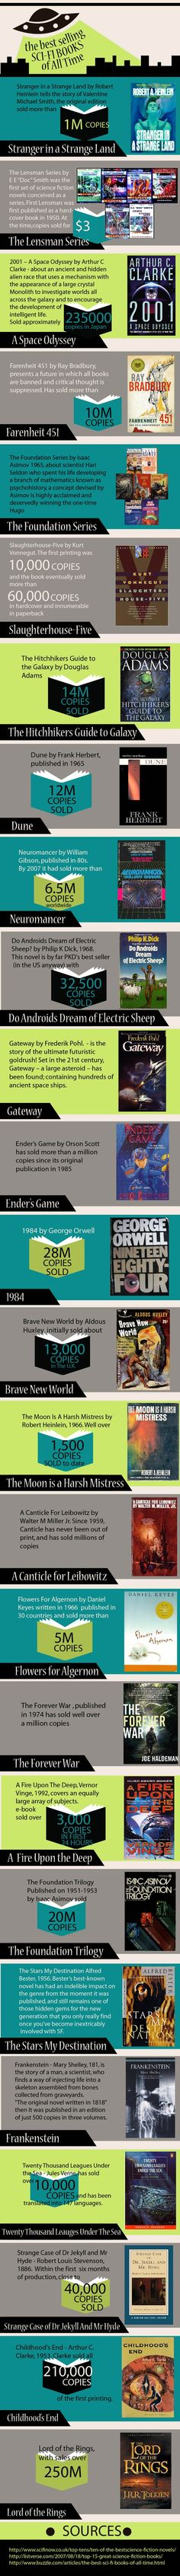 The best selling SCI-FI BOOKS of All Time: An infographic